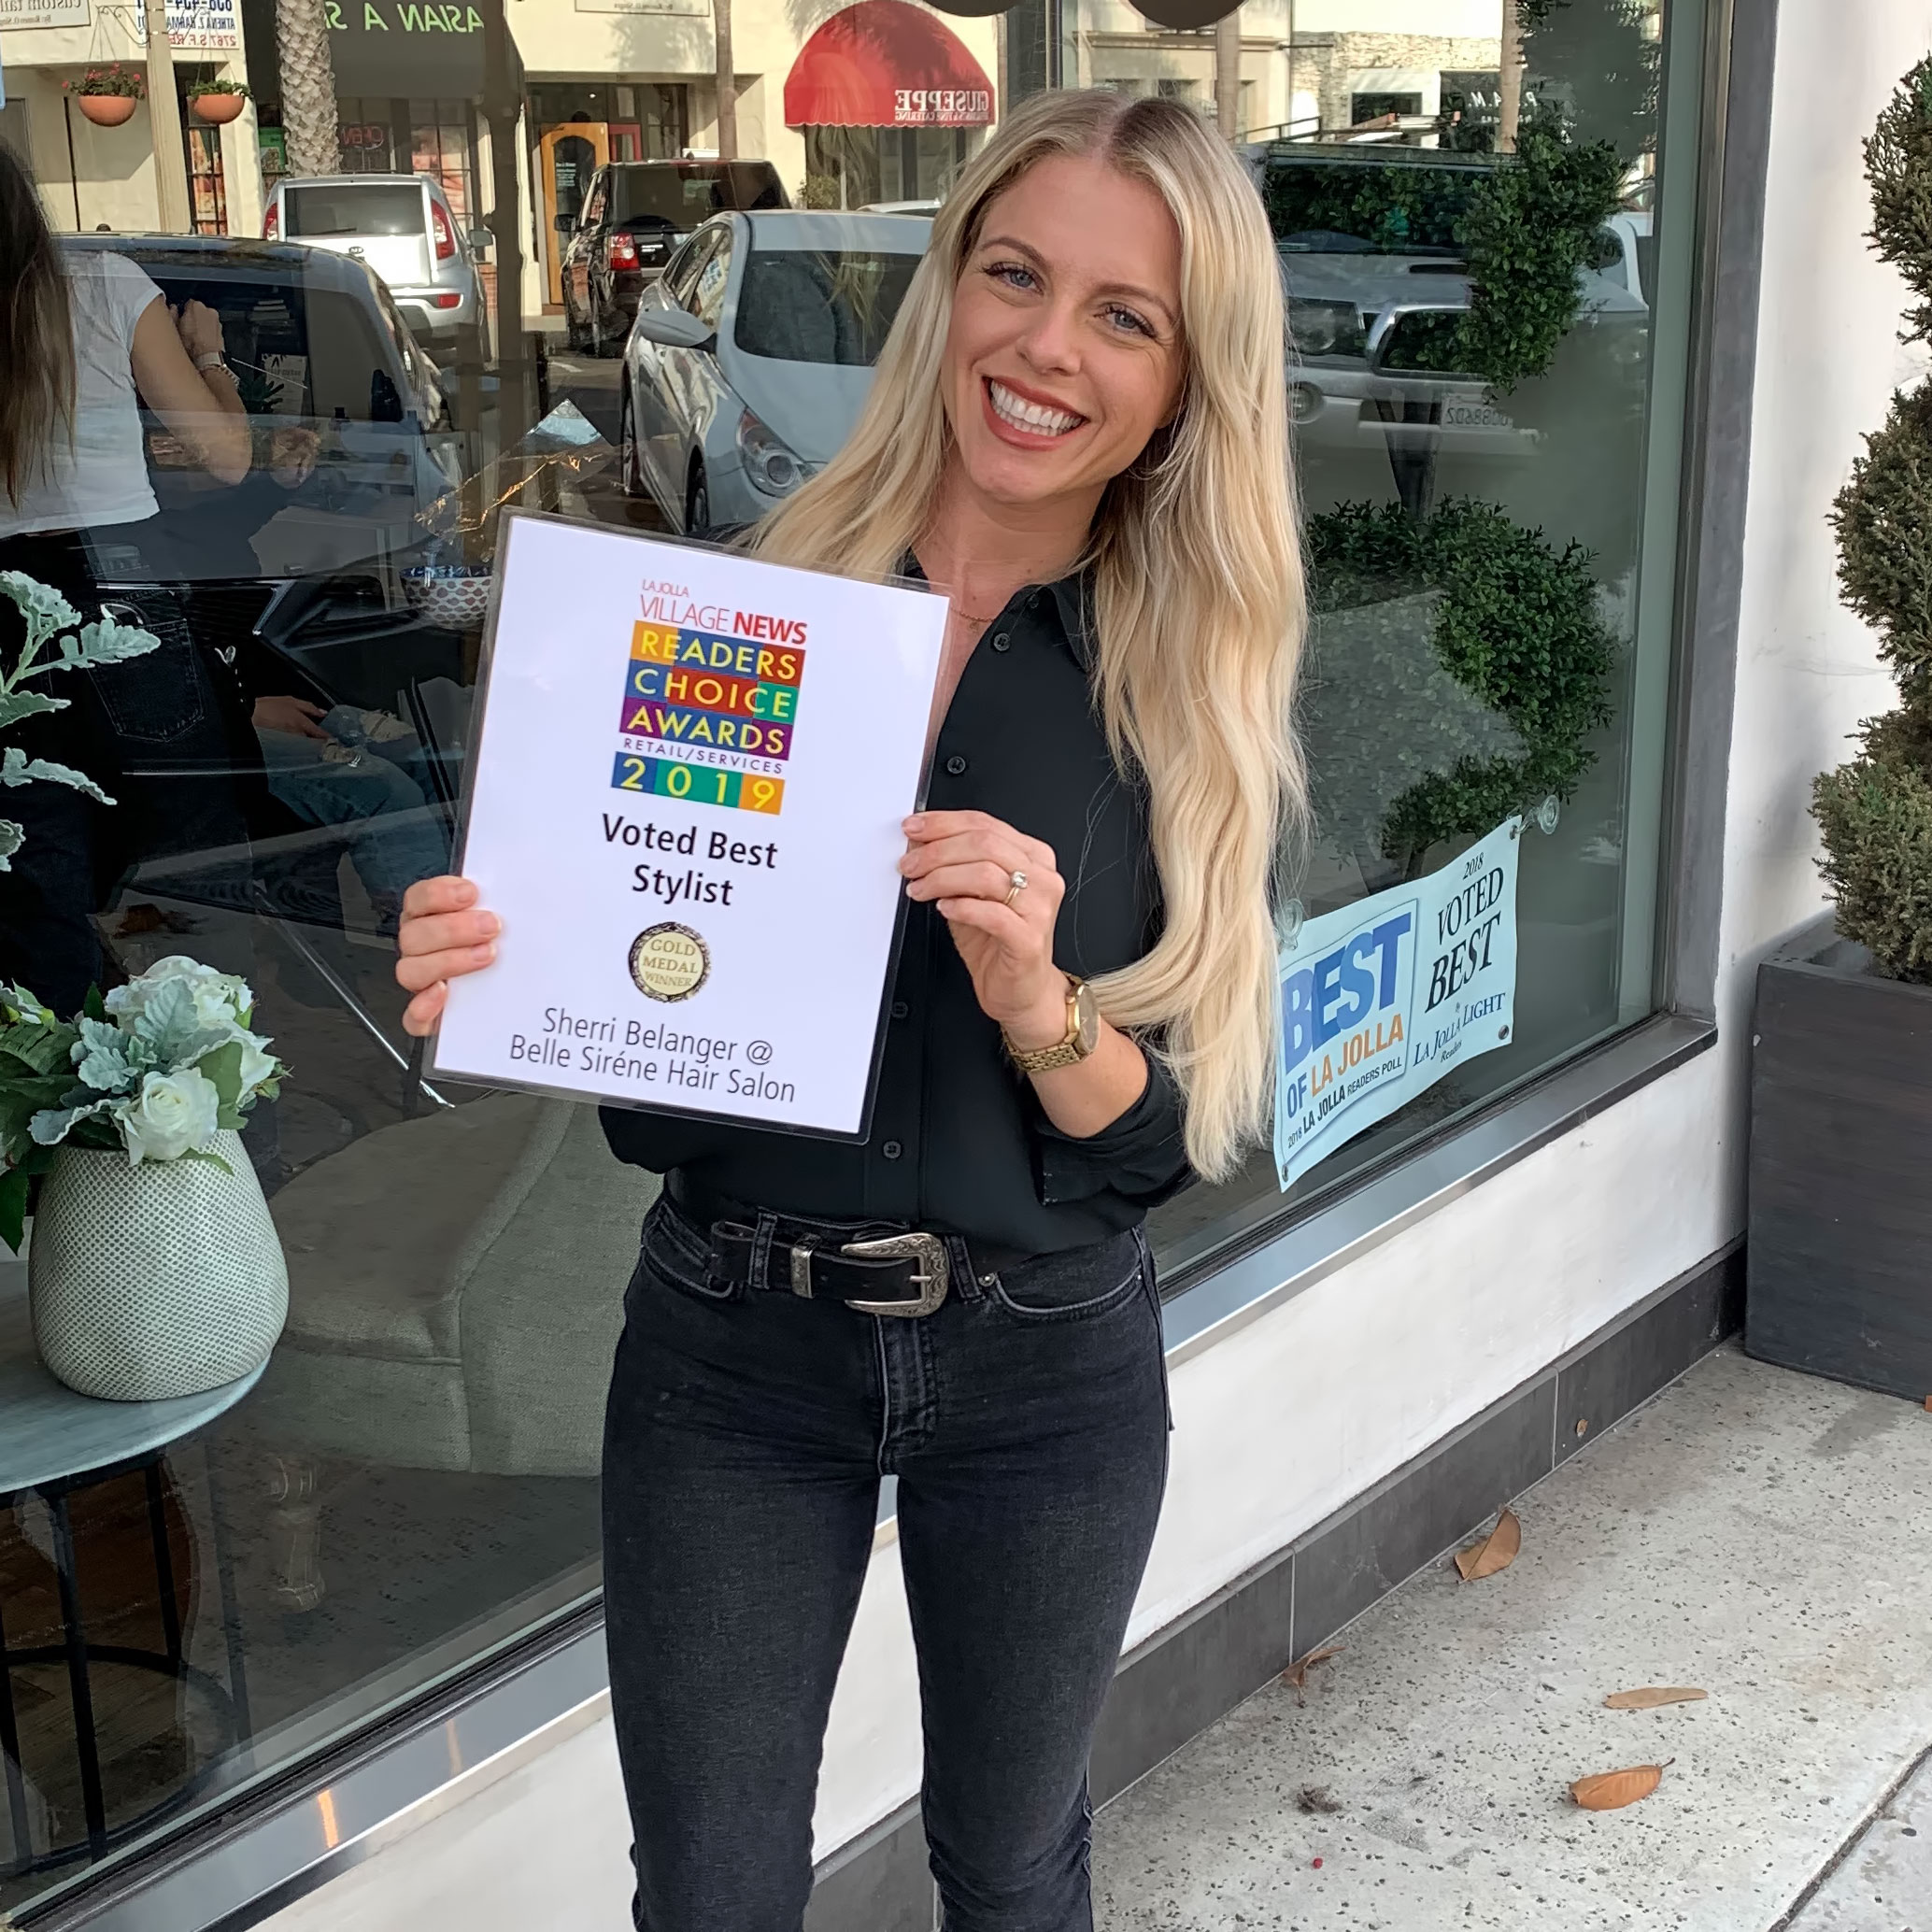 belle-sirene-la-jolla-salon-readers-choice-award-2019